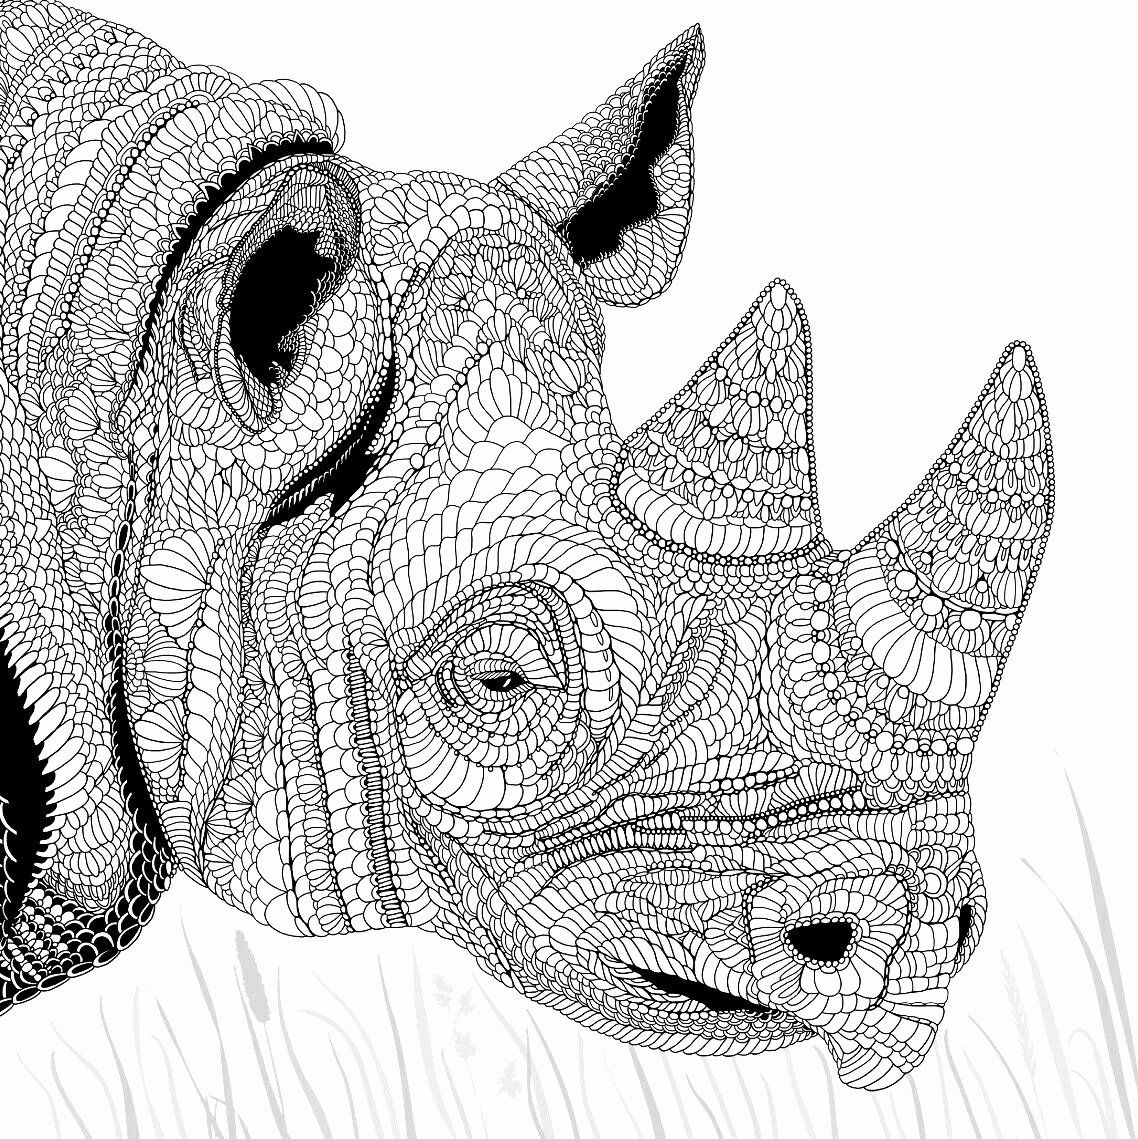 Detailed Coloring Pages Animals Awesome Renoster Colouring Pages Detailed Coloring Pages Animal Coloring Pages Coloring Pages